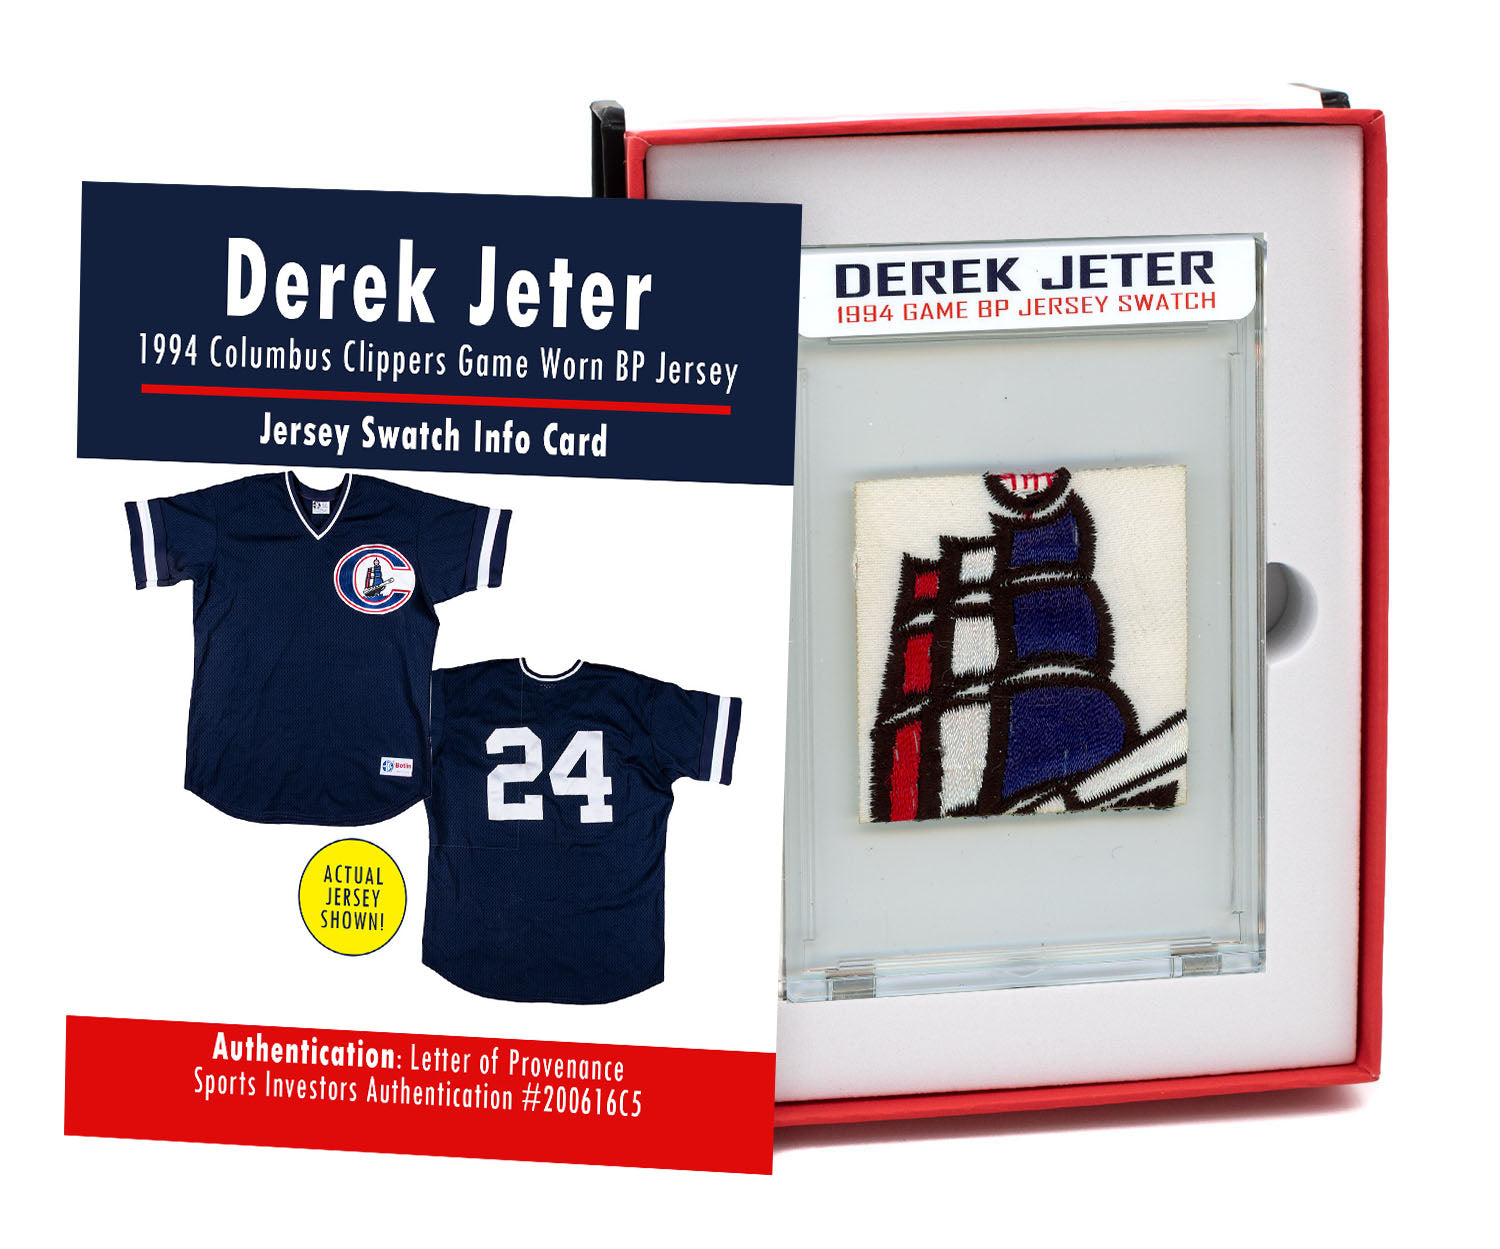 DEREK JETER 1994 CLIPPERS GAME WORN BP JERSEY MYSTERY SEALED SWATCH BOX!